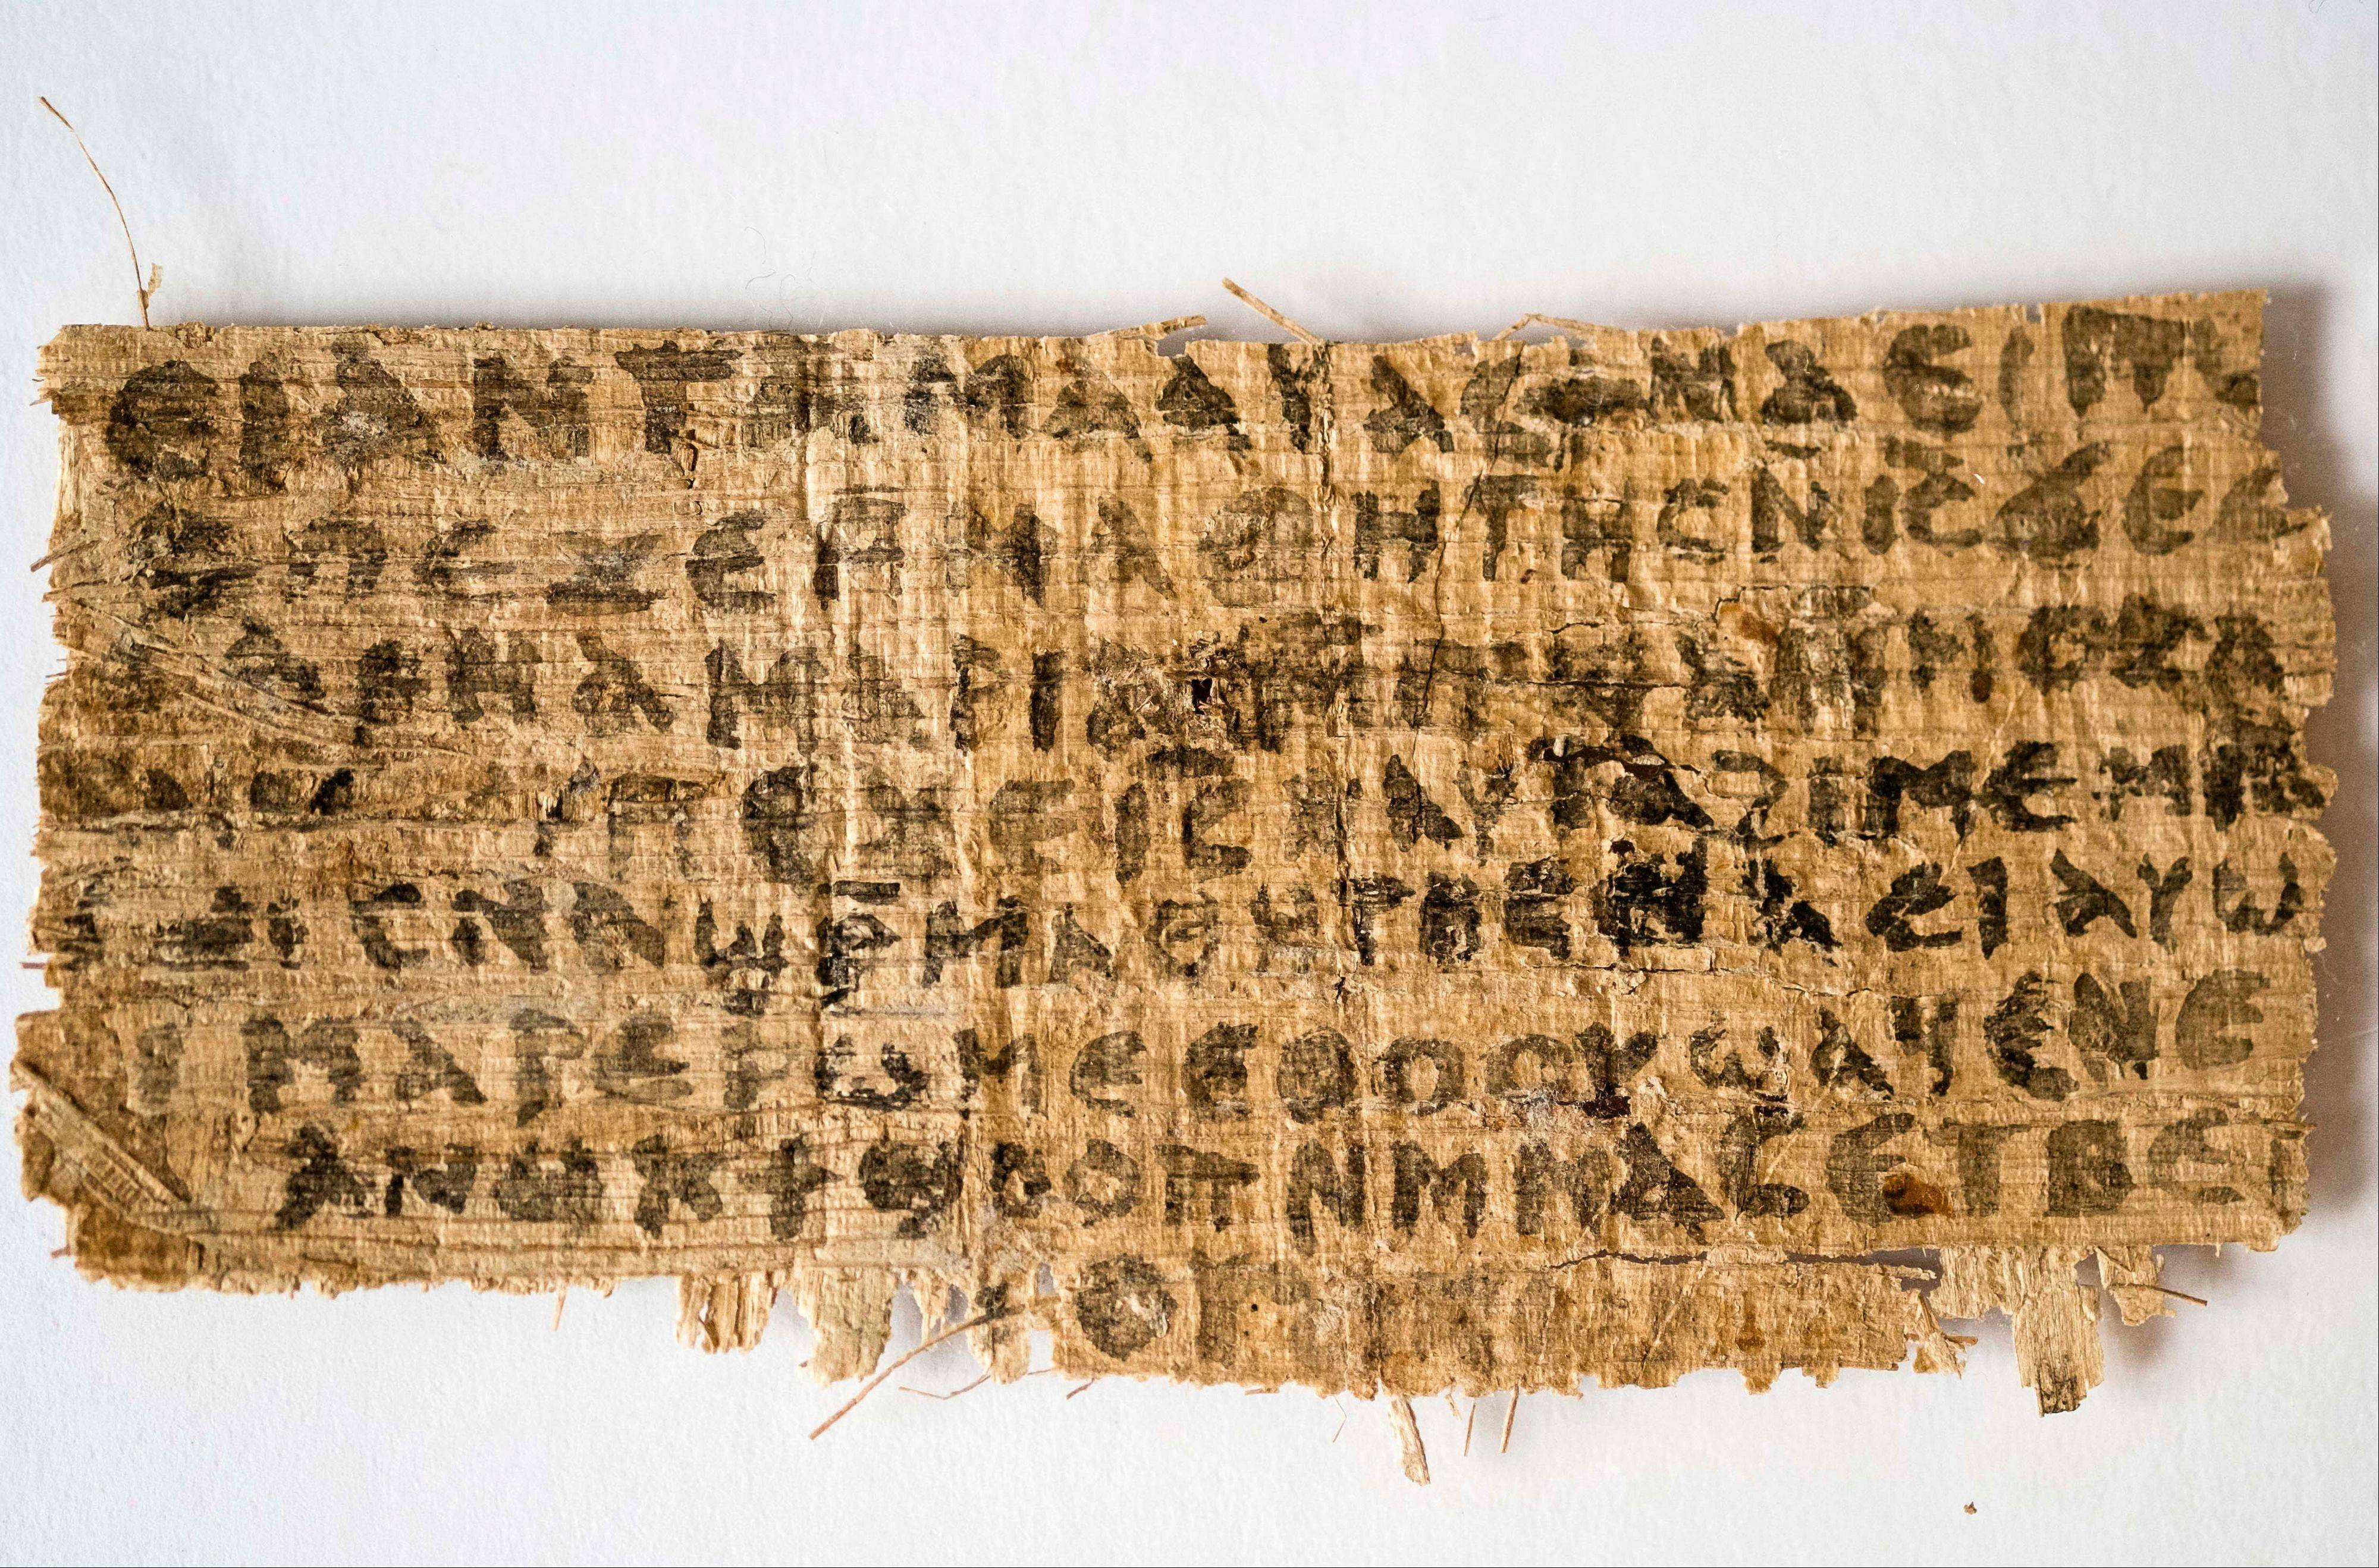 This photo released by Harvard University shows a fourth-century fragment of papyrus that divinity professor Karen L. King says is the only existing ancient text that quotes Jesus explicitly referring to having a wife. But international scholars say the fragment's grammar, form and content raise several red flags.